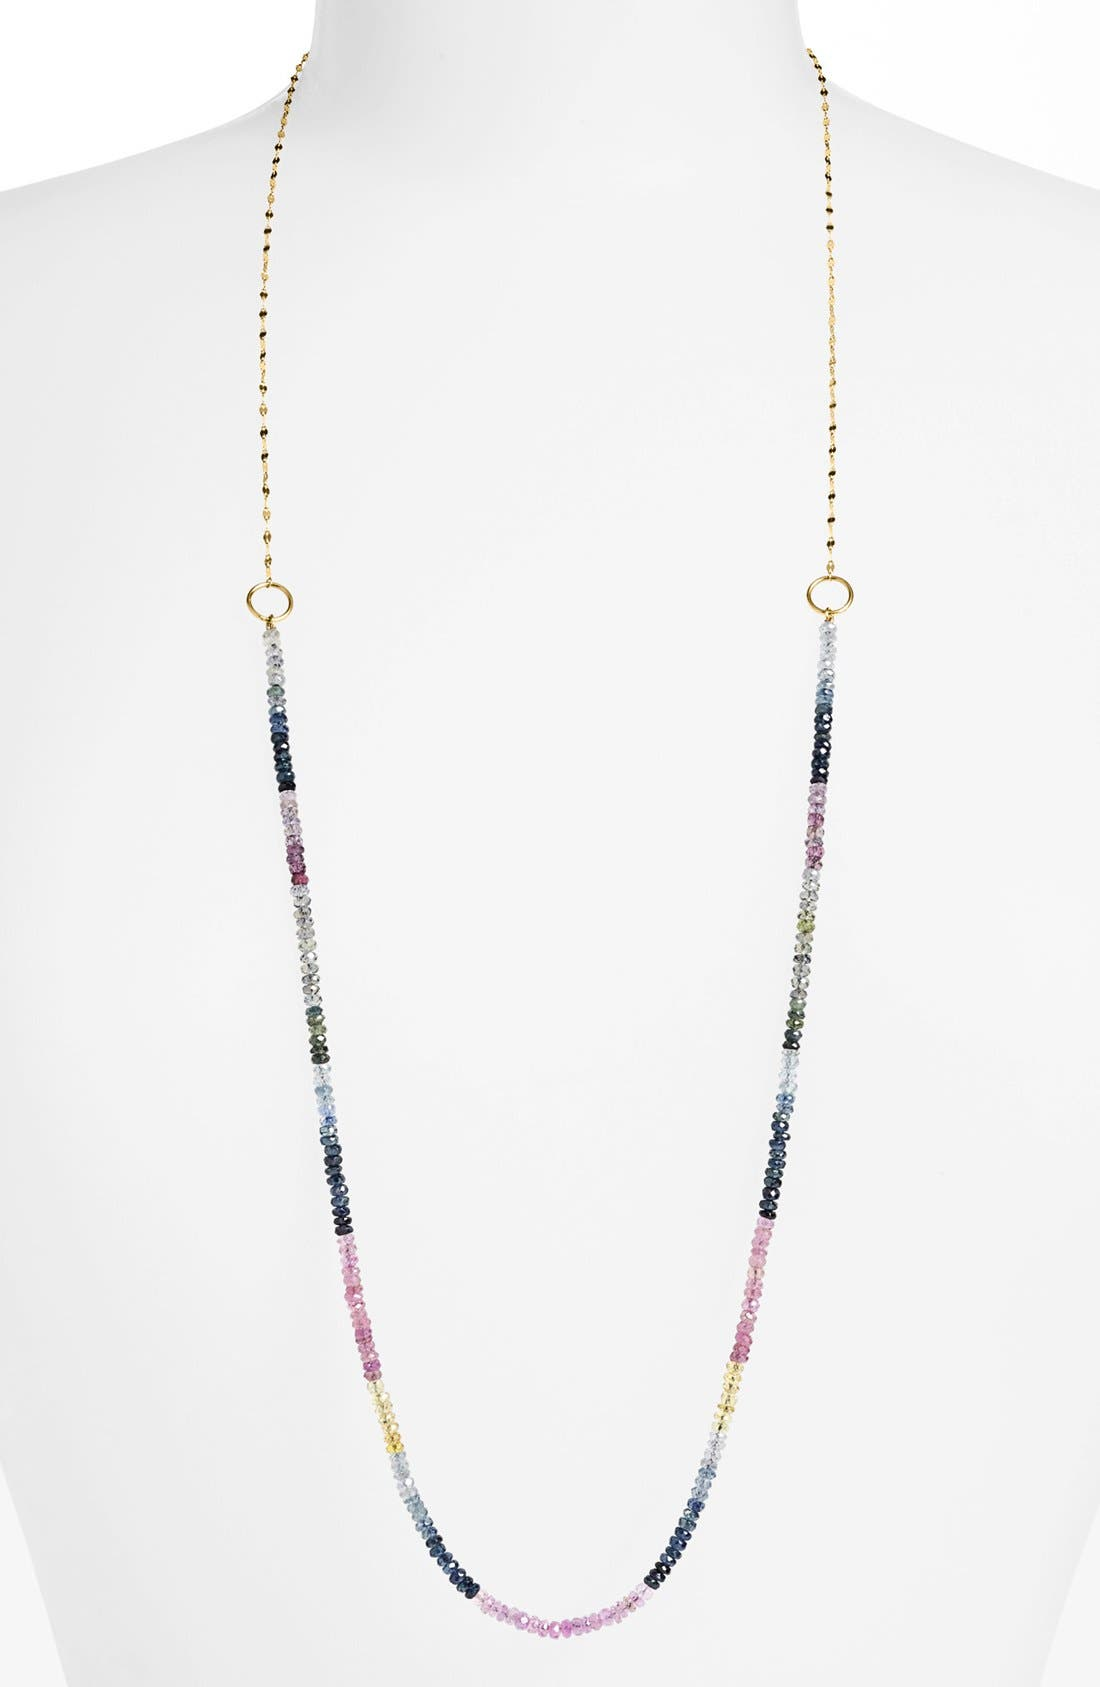 Main Image - Lana Jewelry 'Stone Gold' Long Beaded Necklace